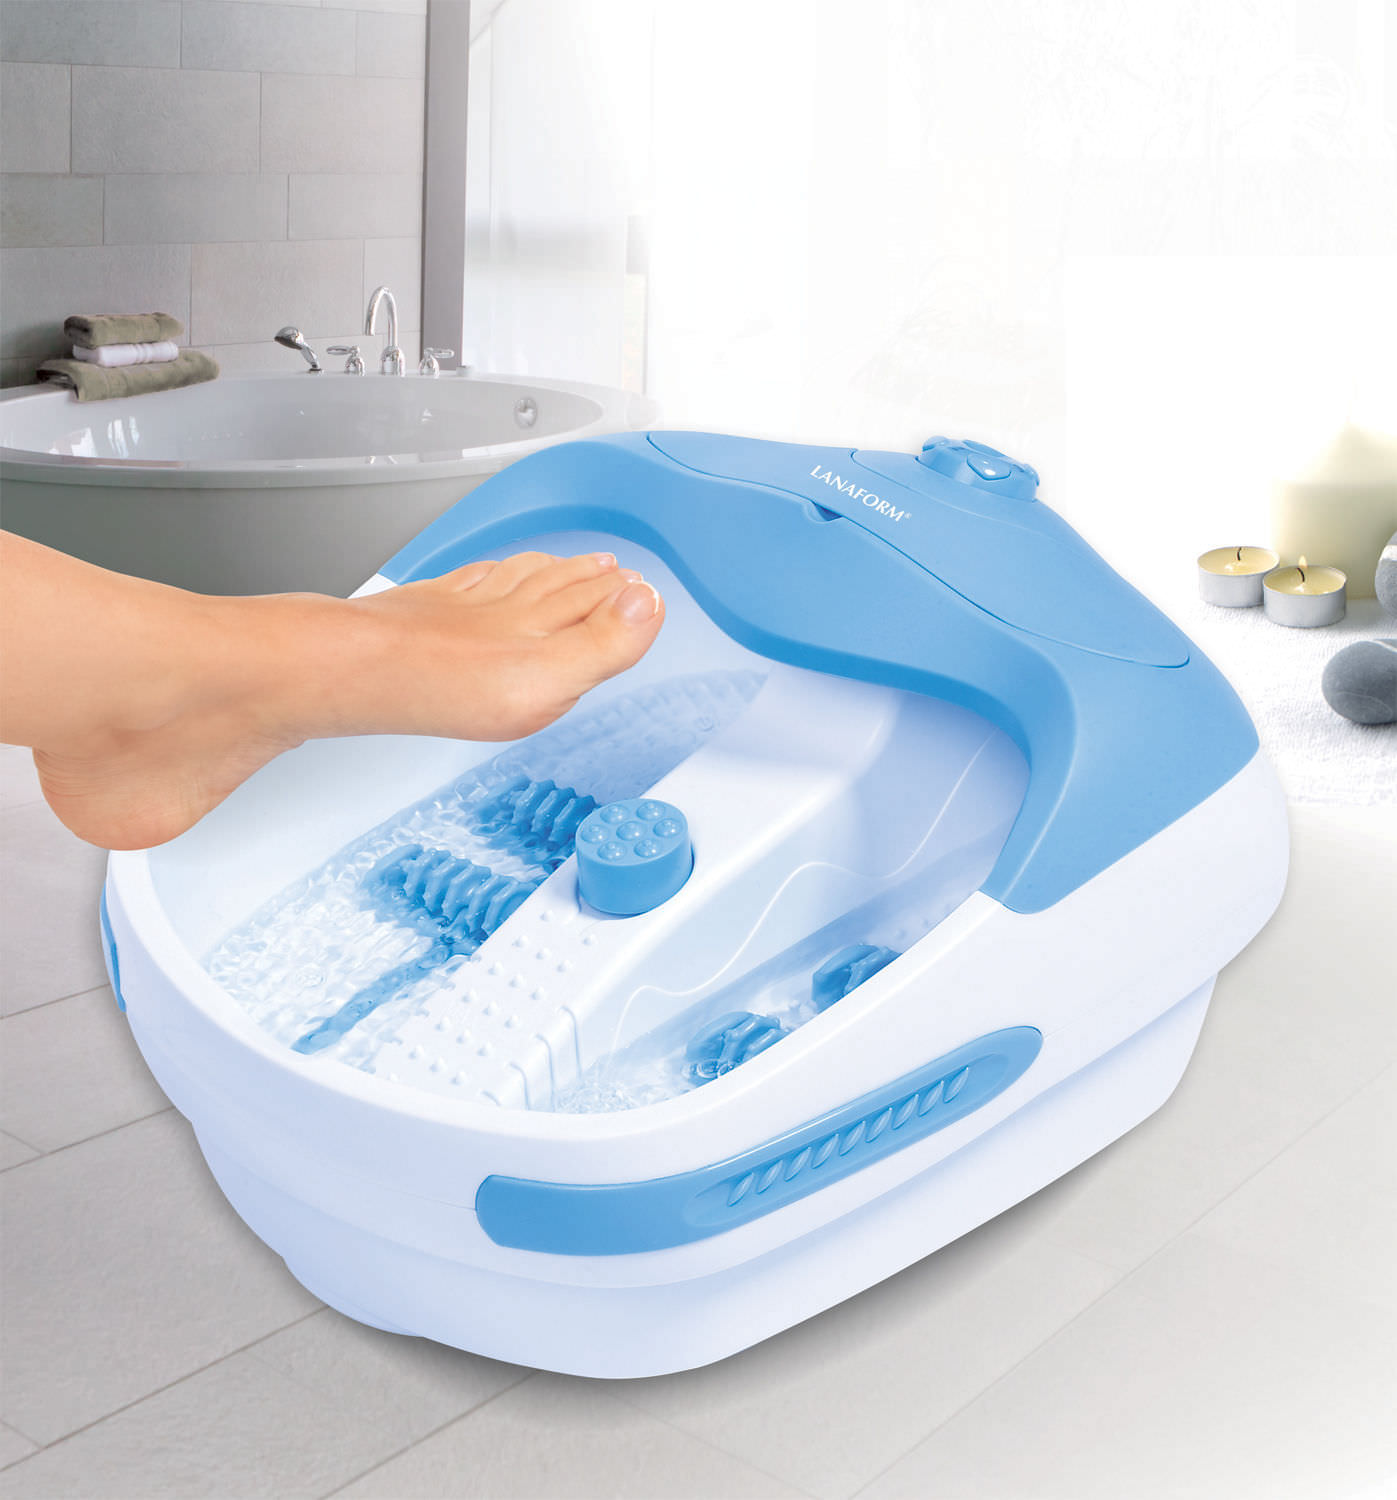 Bồn ngâm chân massage Lanaform Bubble Footcare